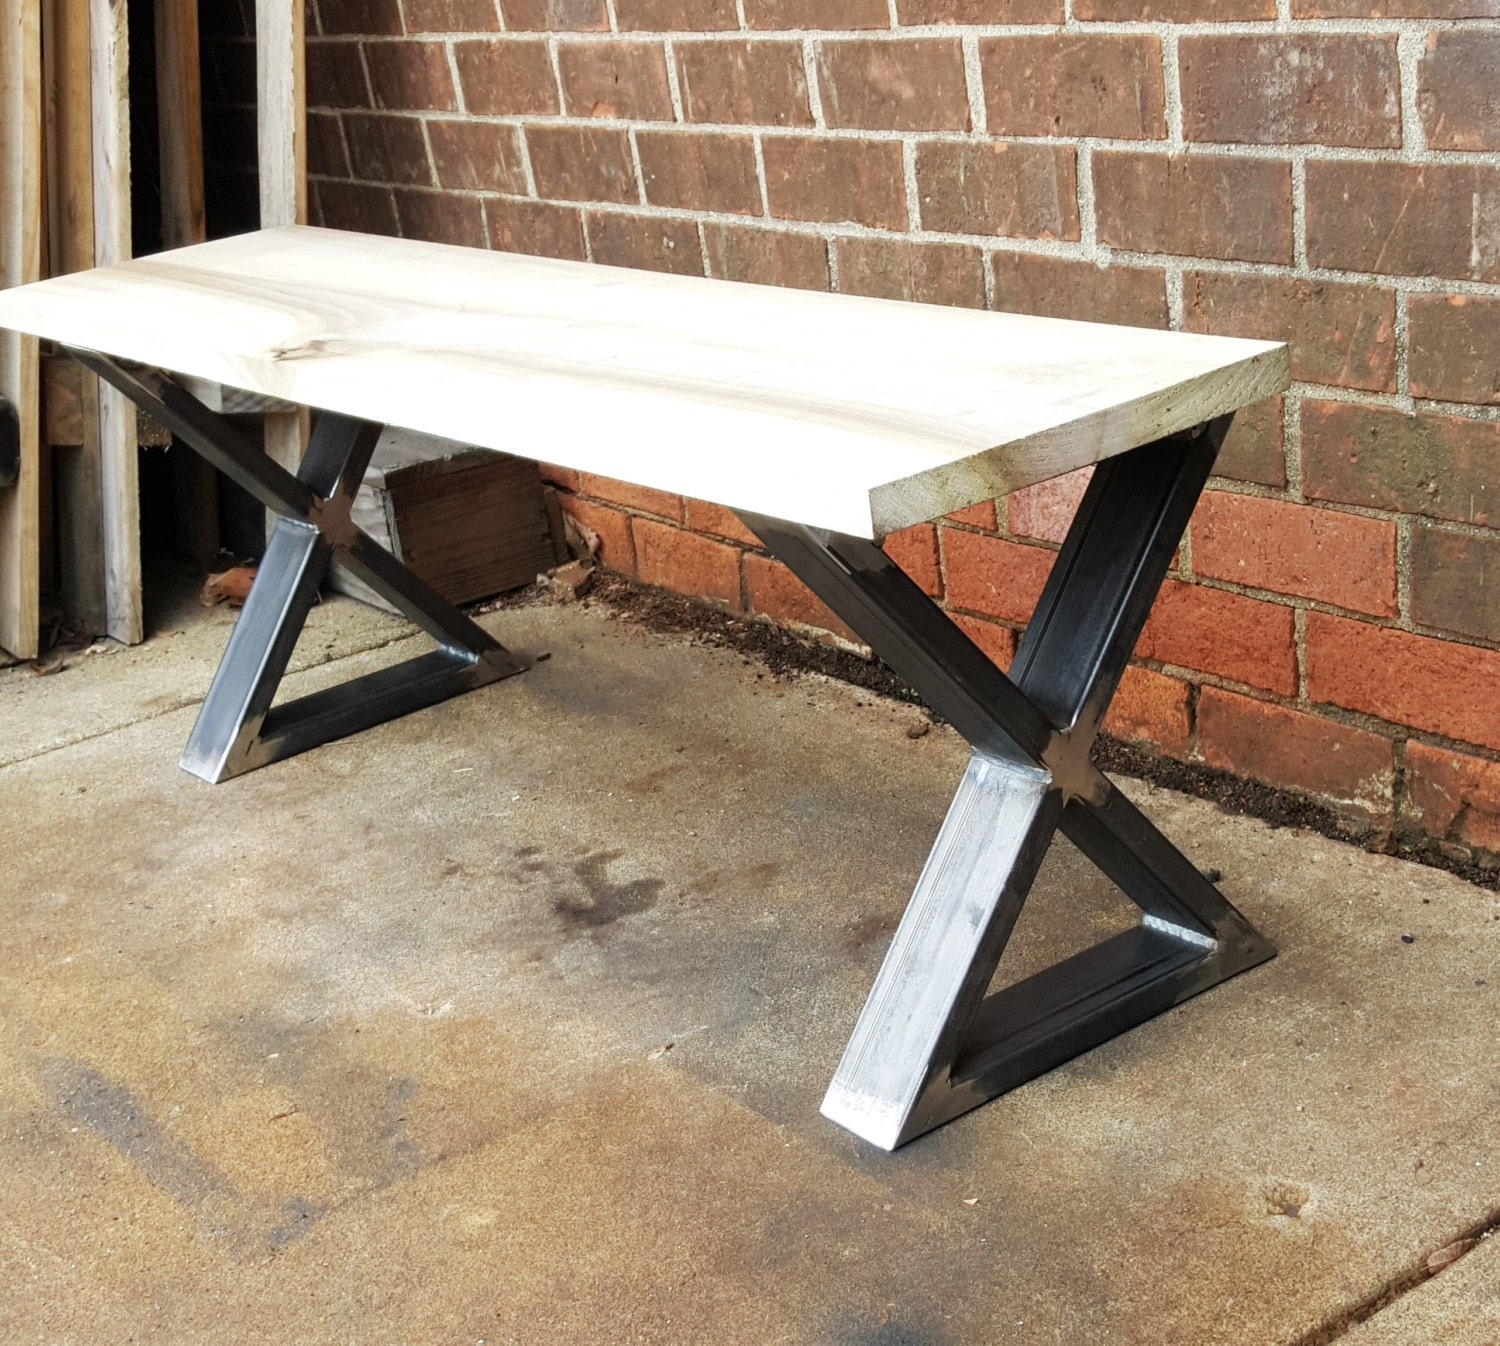 Set of 2 Modern Bench X Legs Model BX02L Heavy Duty industrial